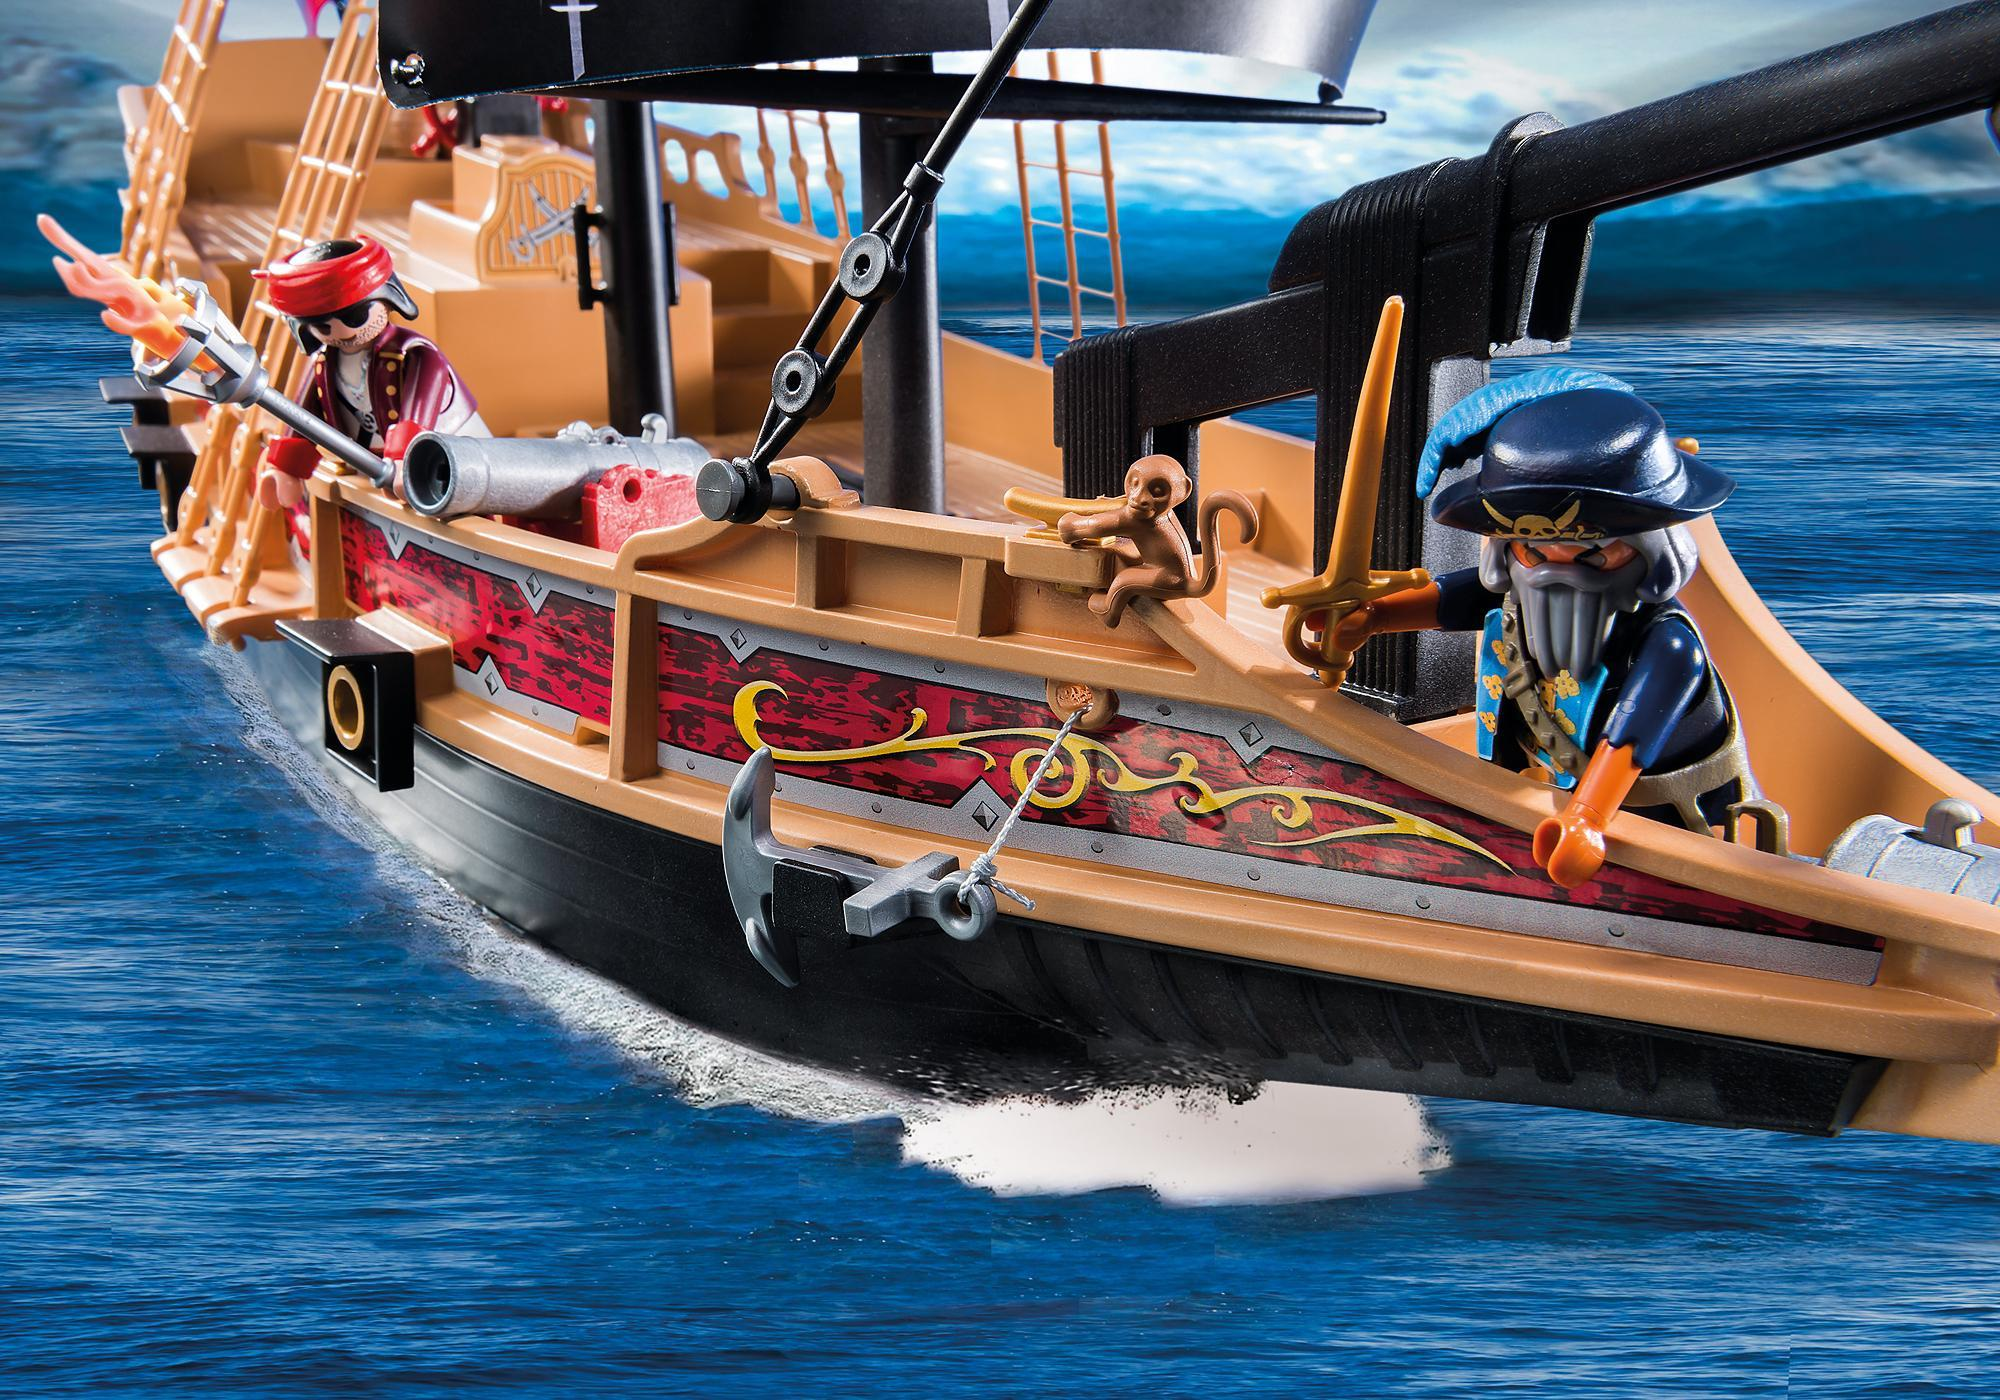 http://media.playmobil.com/i/playmobil/6678_product_extra3/Piraten-Kampfschiff